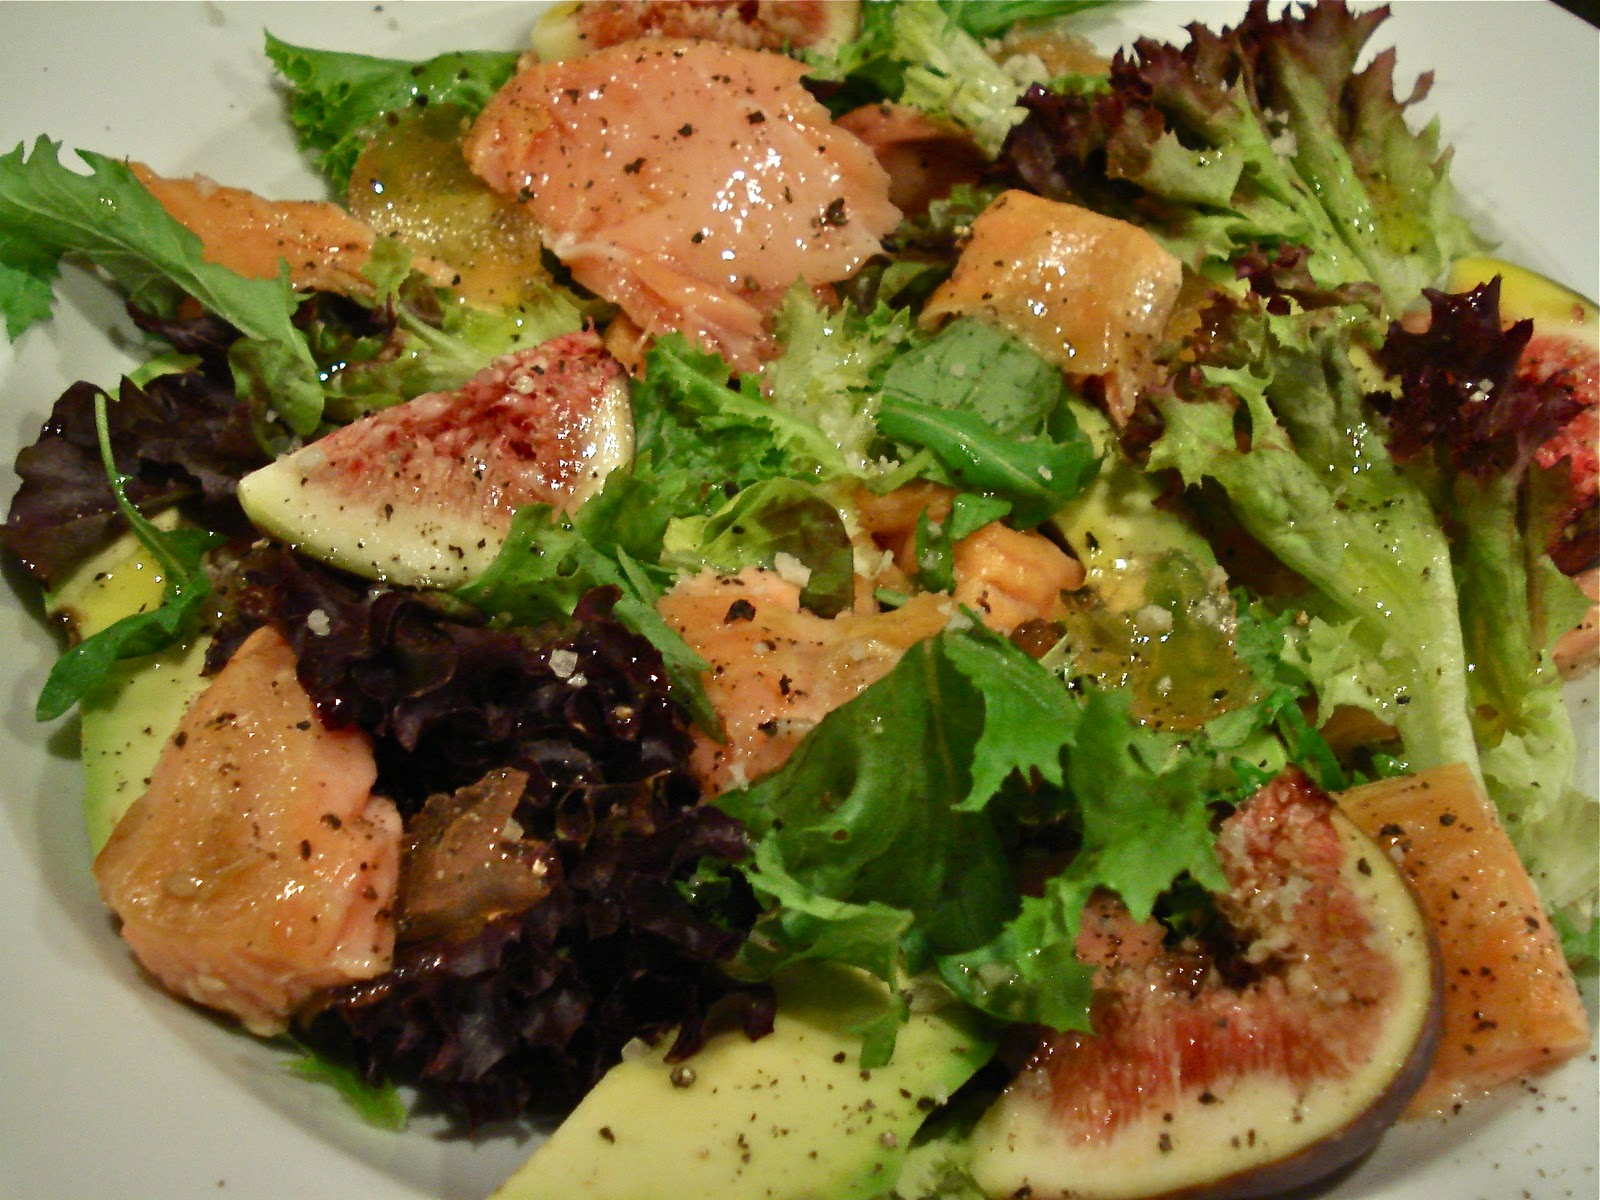 SALAD OF TEA SMOKED SALMON, FIGS AND MUSTARD FRUITS